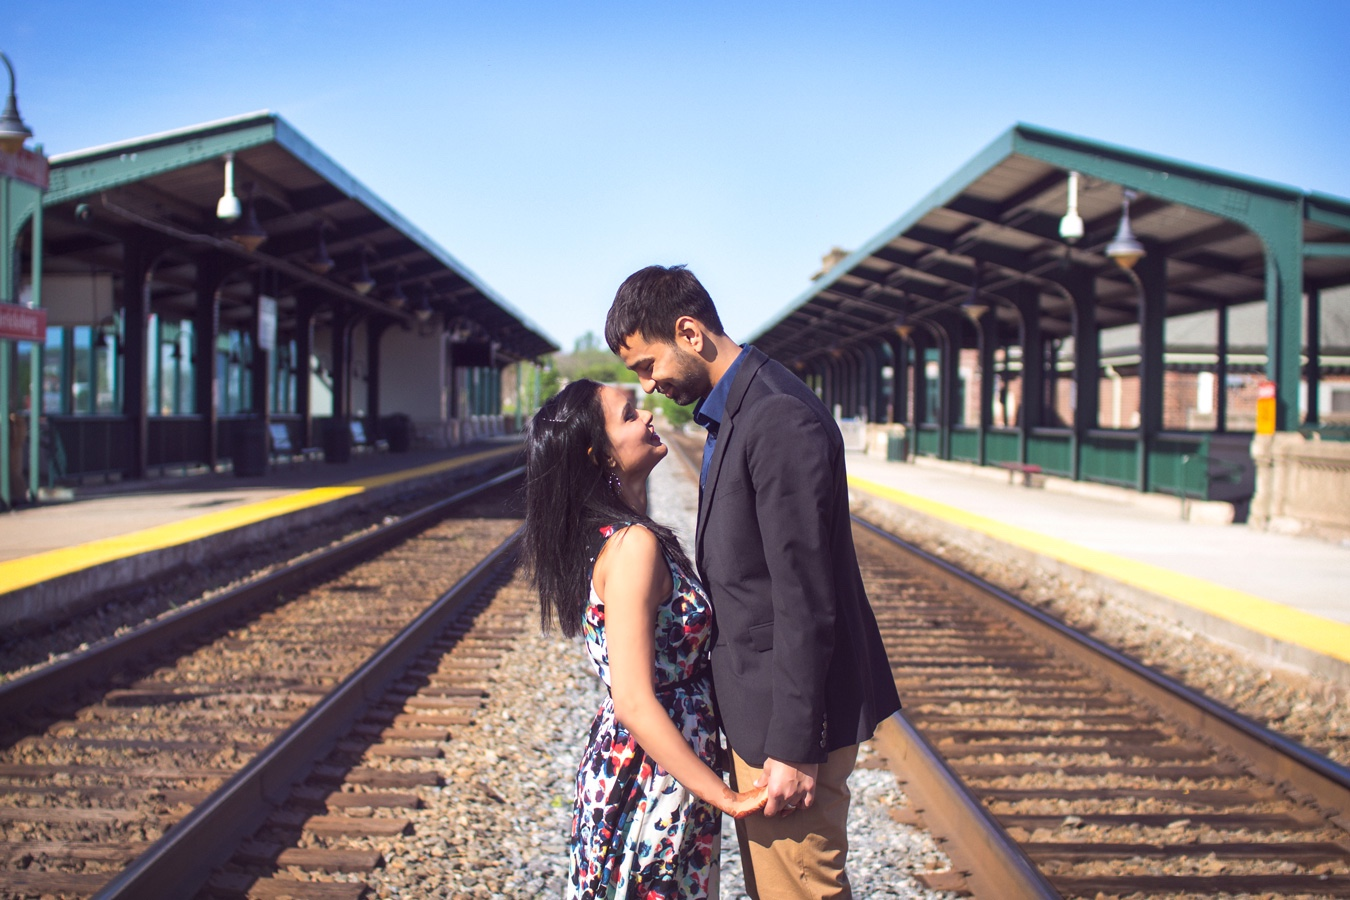 Avani-Mayur-Engagement-Photoshoot_Fredericksburg